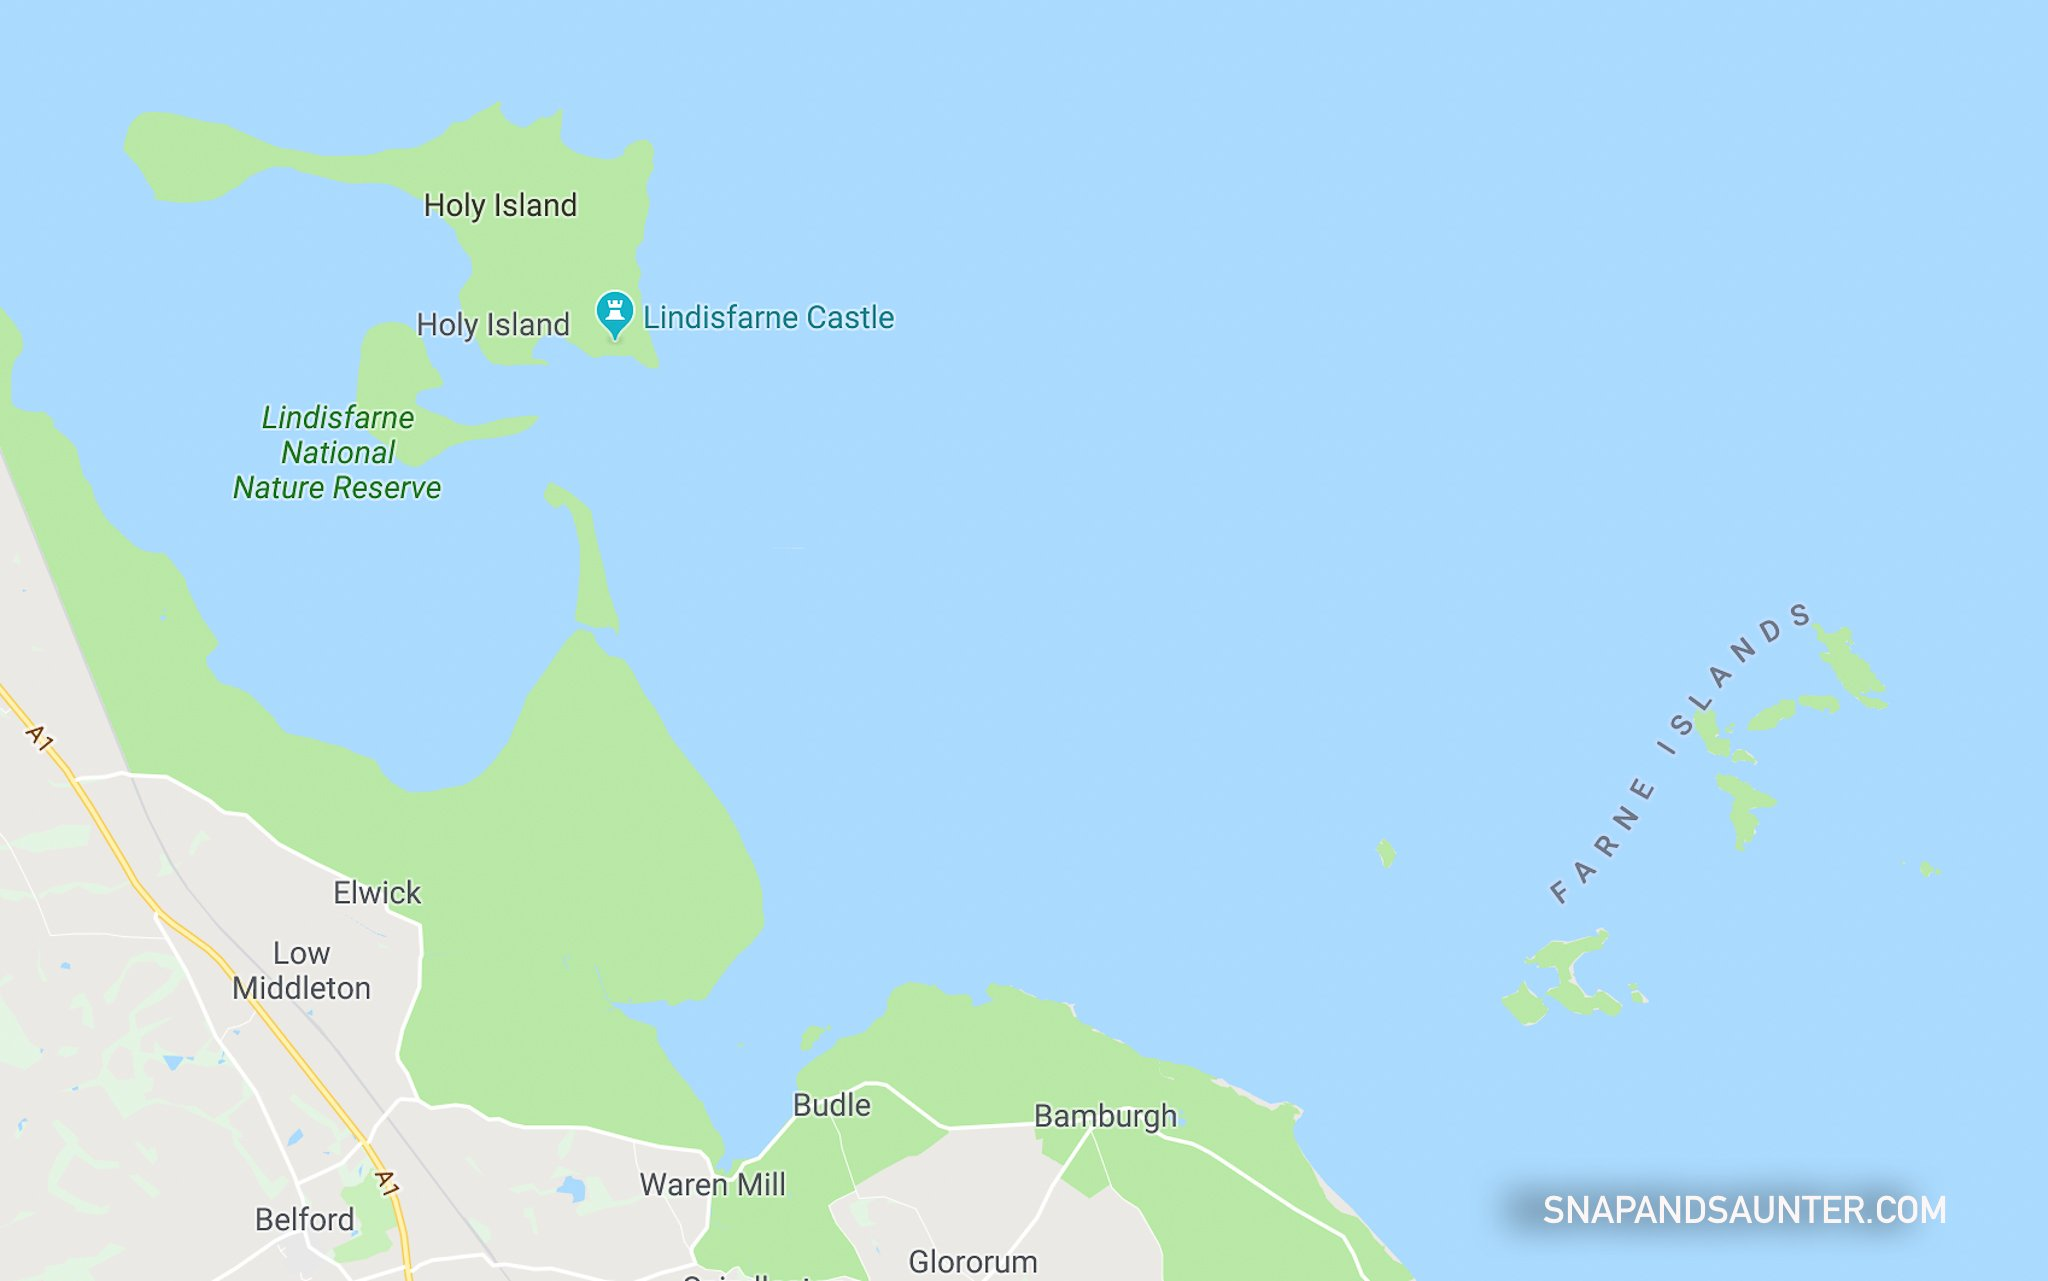 google map showing Farne Islands